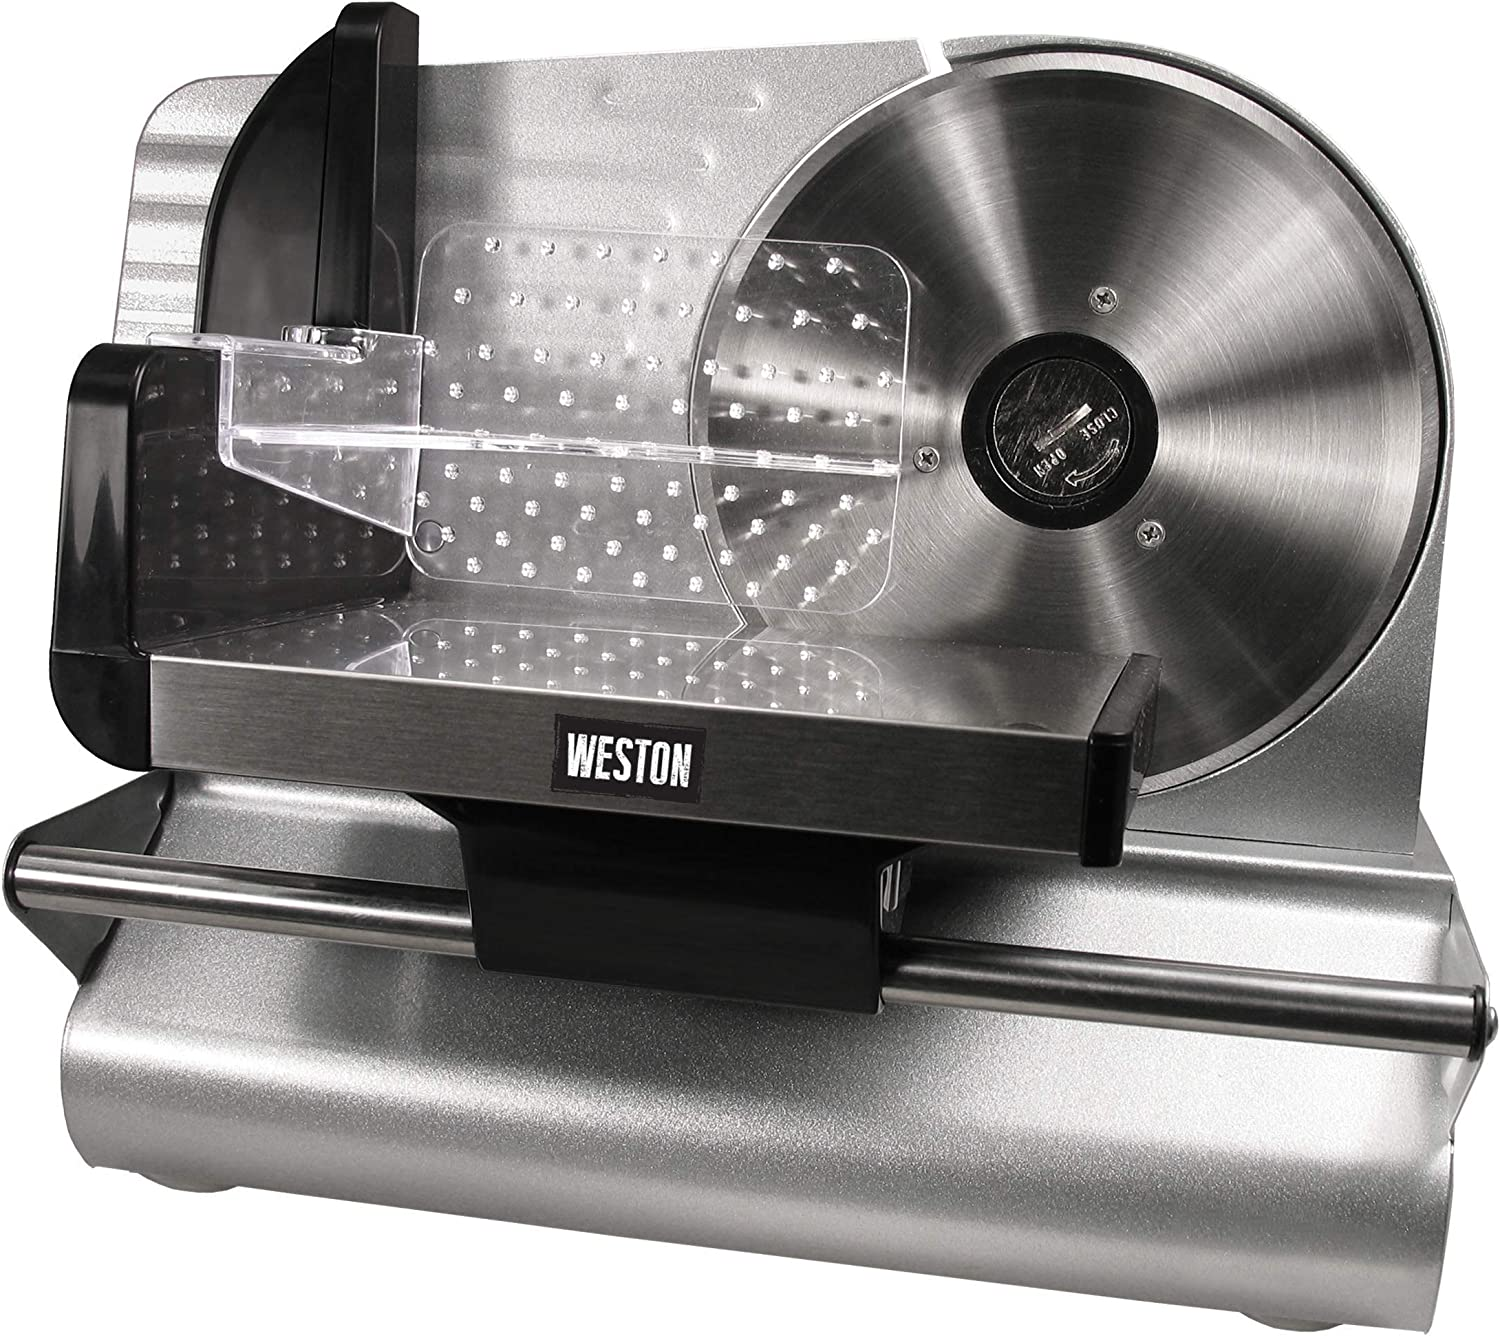 Weston 7.5-Inch Stainless Steel Food Slicer (83-0750-W)